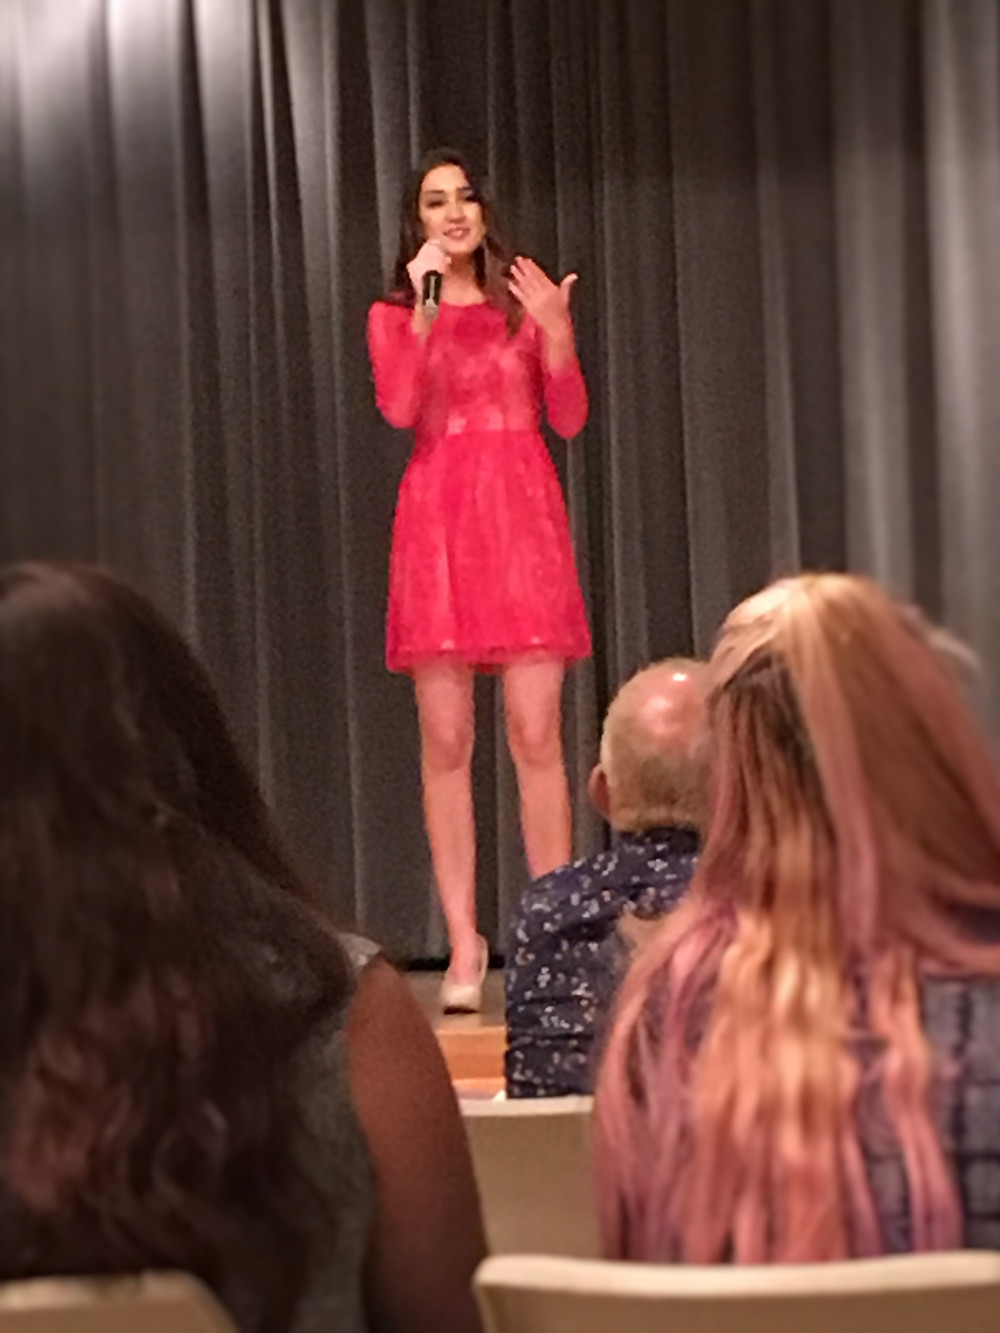 Rene Smith reciting a poem during the talent portion of the Miss Portales Pageant. Photo by Jena Slater